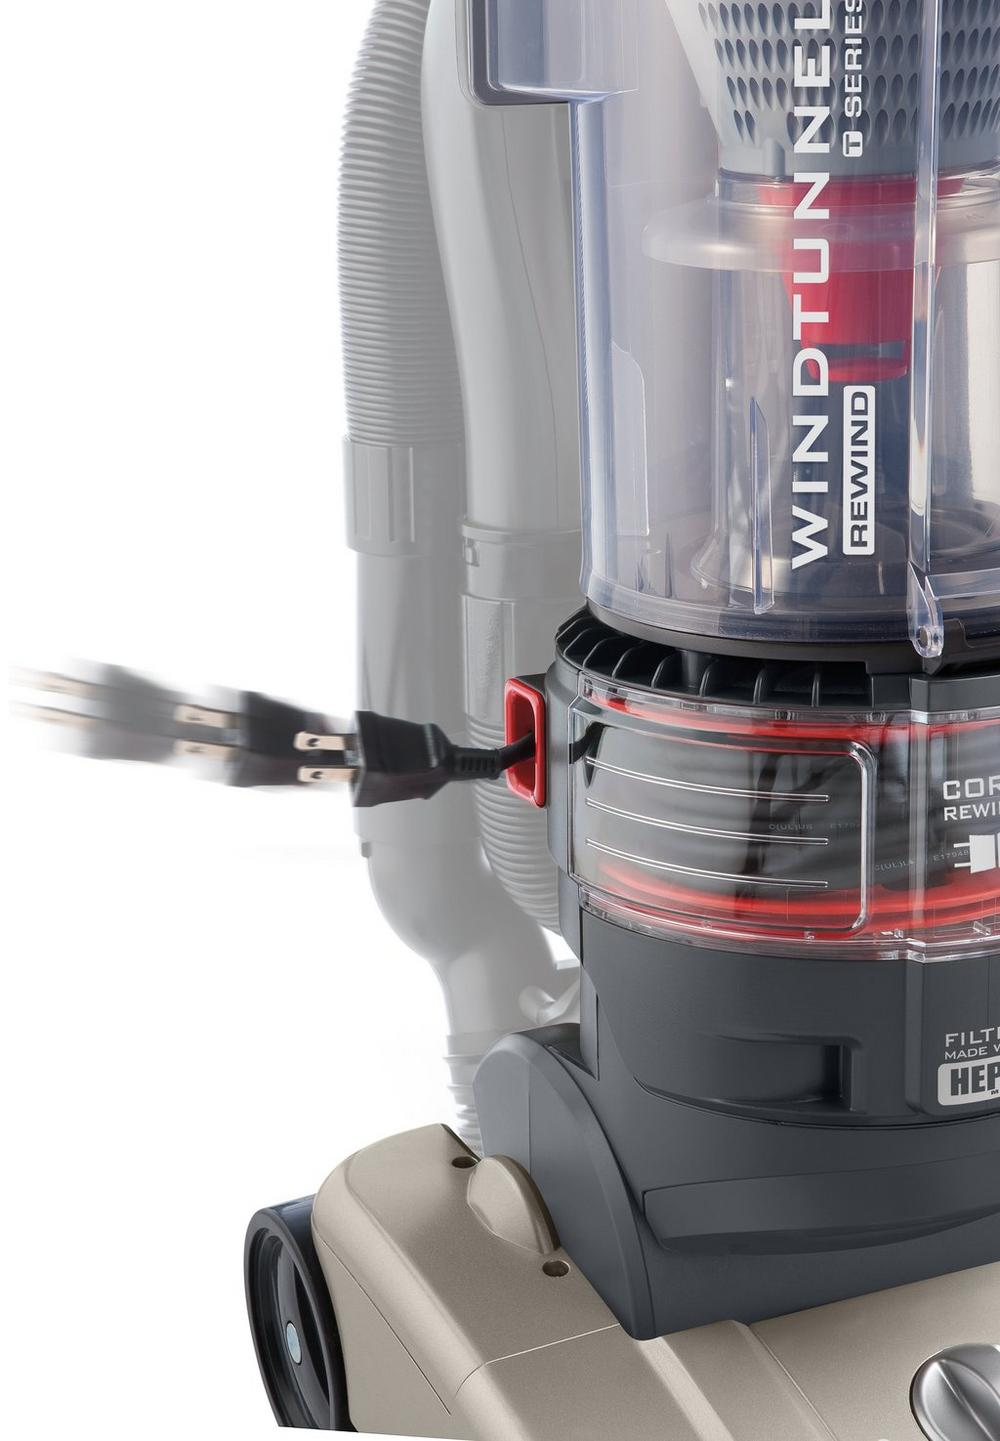 Reconditioned WindTunnel T1-Series Rewind Upright Vacuum8